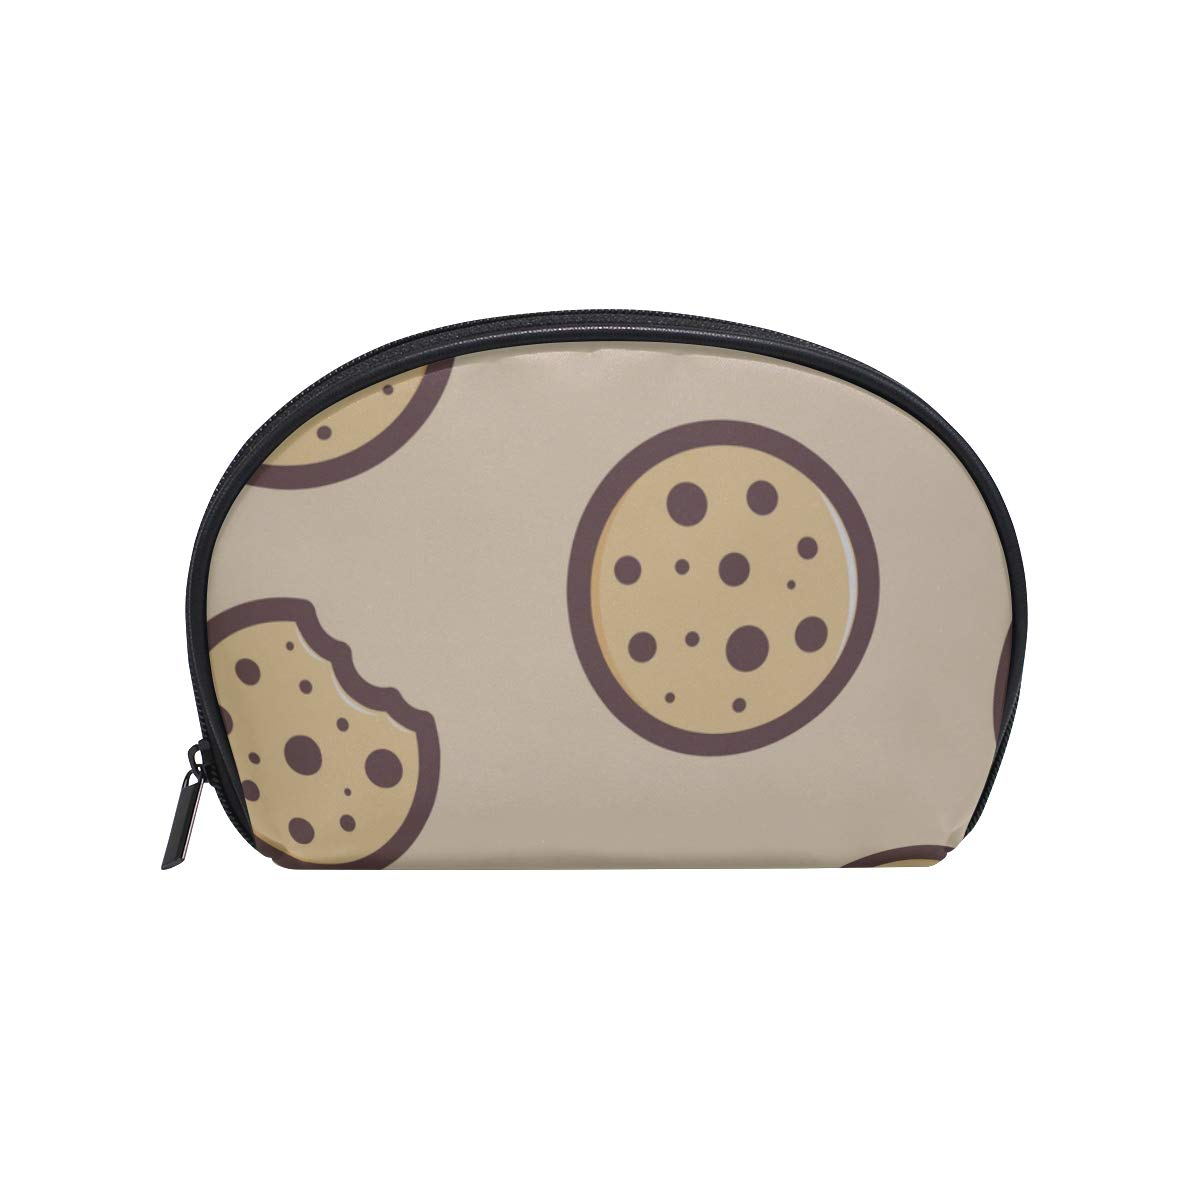 Shell Shape Lear Toiletry Bag Cute Delicious Food Dessert Cookies Print Makeup Bag For Teens Makeup Wash Bag Portable Travel Multifunction Storage Bag With Zipper For Women